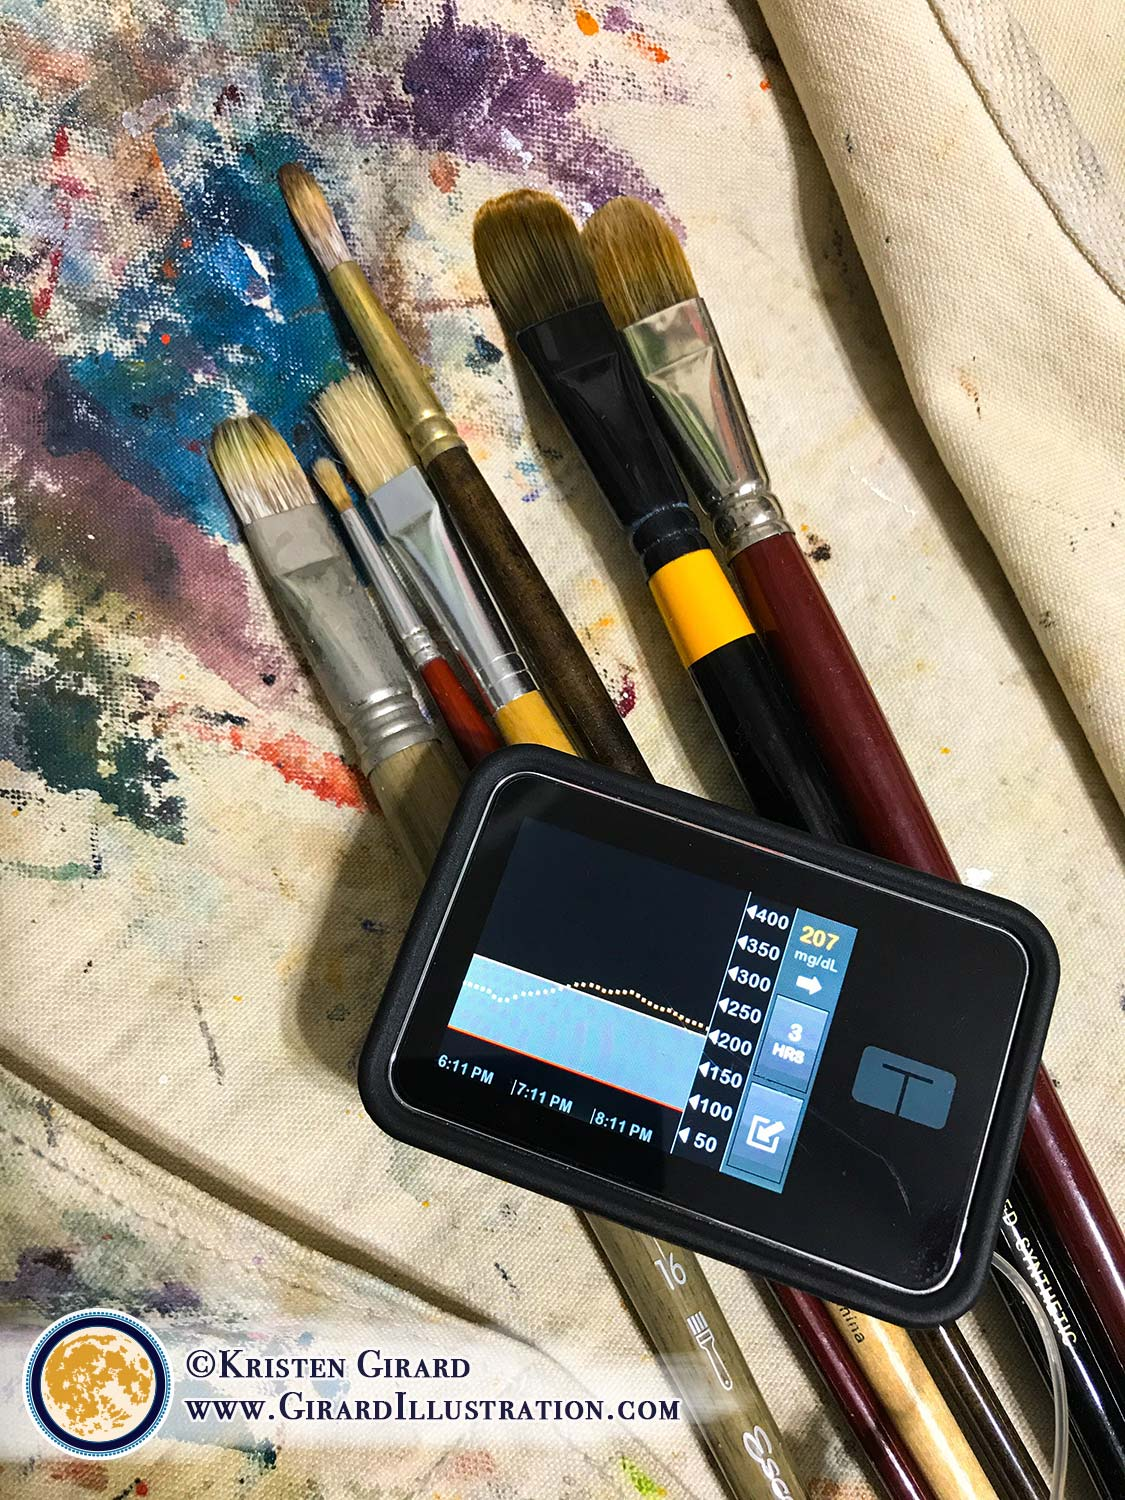 20 things on the mind of a person living with diabetes - on a good day. Living with type one diabetes is an art form all on it's own, even with my much loved Tandem insulin pump. © Kristen Girard